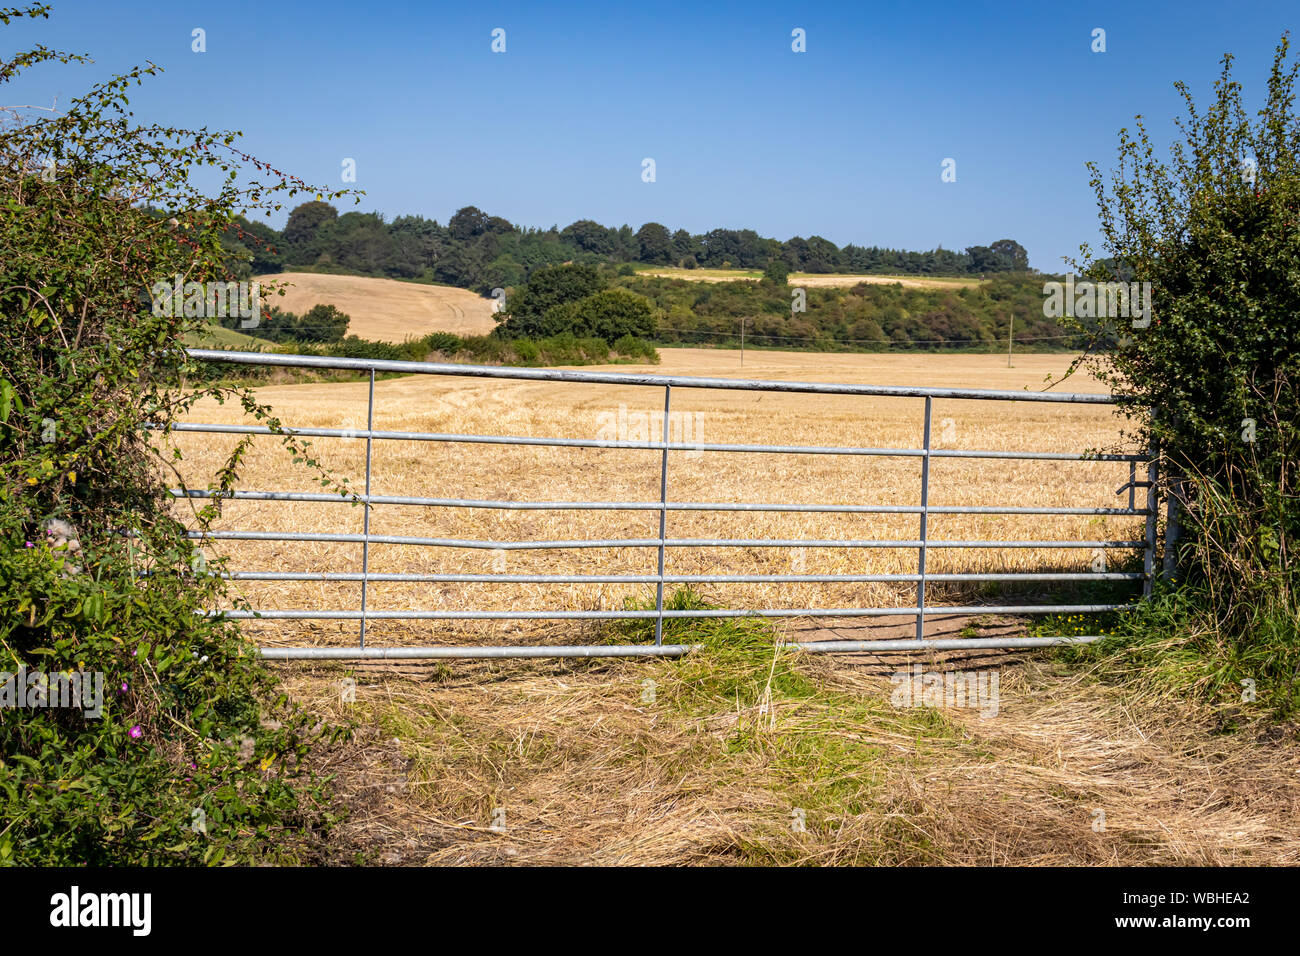 Padlocked Metal and Wooden Farm Gates Protecting Livestock